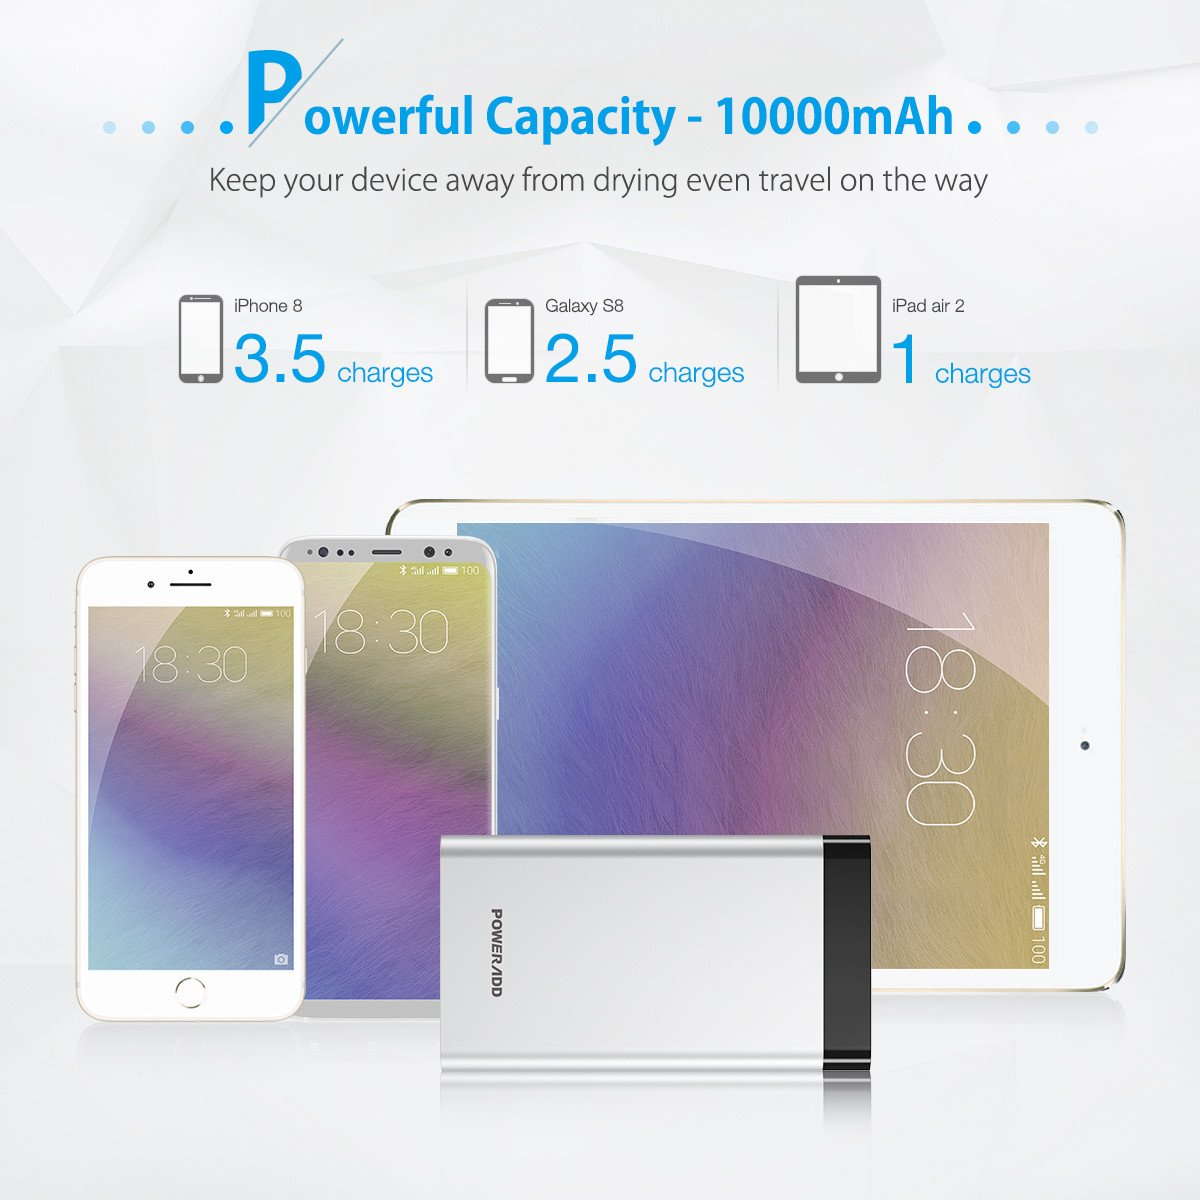 Poweradd Virgo I 10000mAh Portable Universal External Power Bank with Digital LED Display, Type-C and Micro Two USB Ports Powerbank Compatible with Samsung, iPhone, Huawei and More, Silver